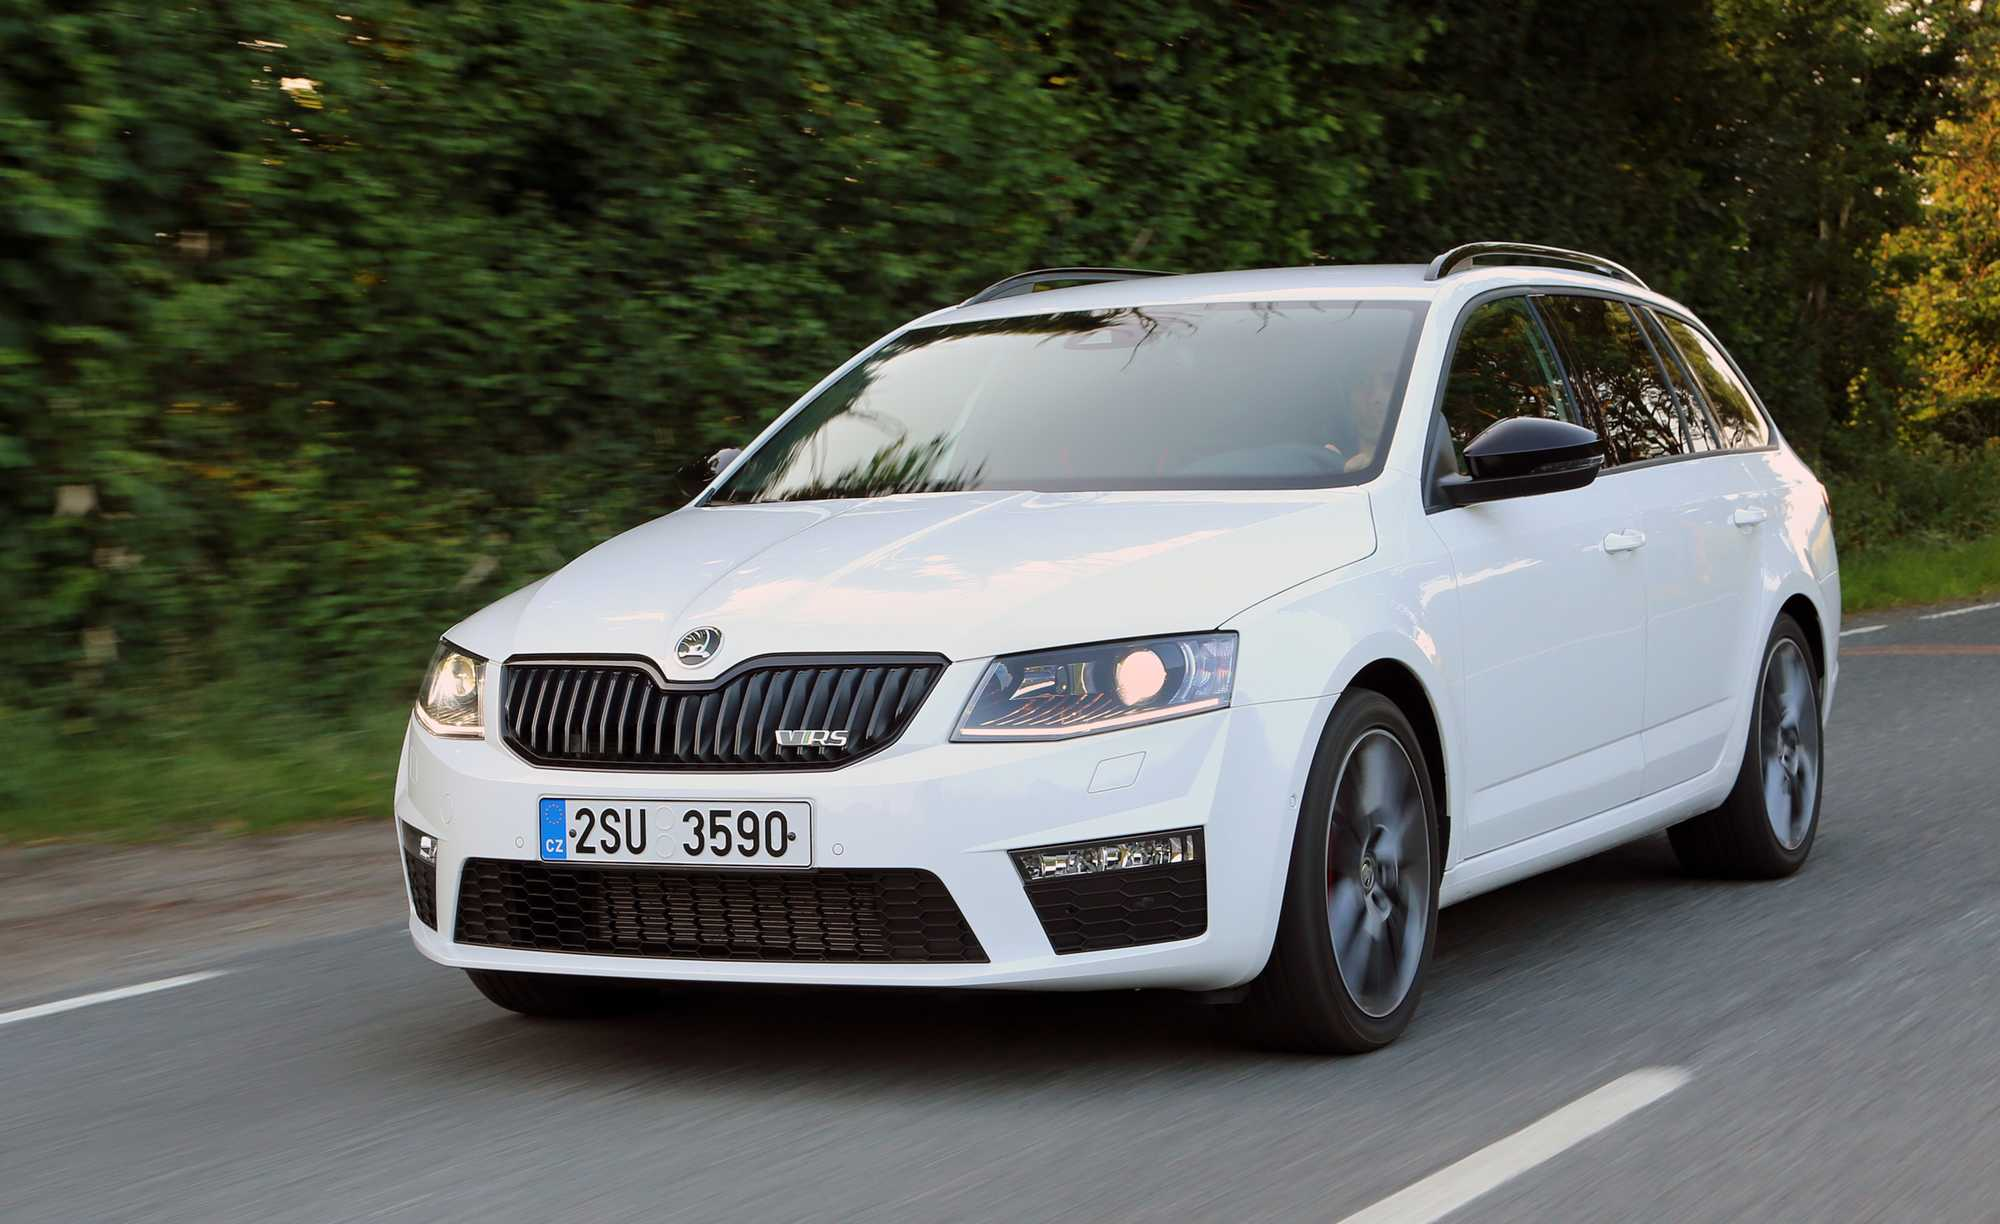 Skoda Octavia Vrs Estate Skoda Octavia Vrs Estate Review Car Keys